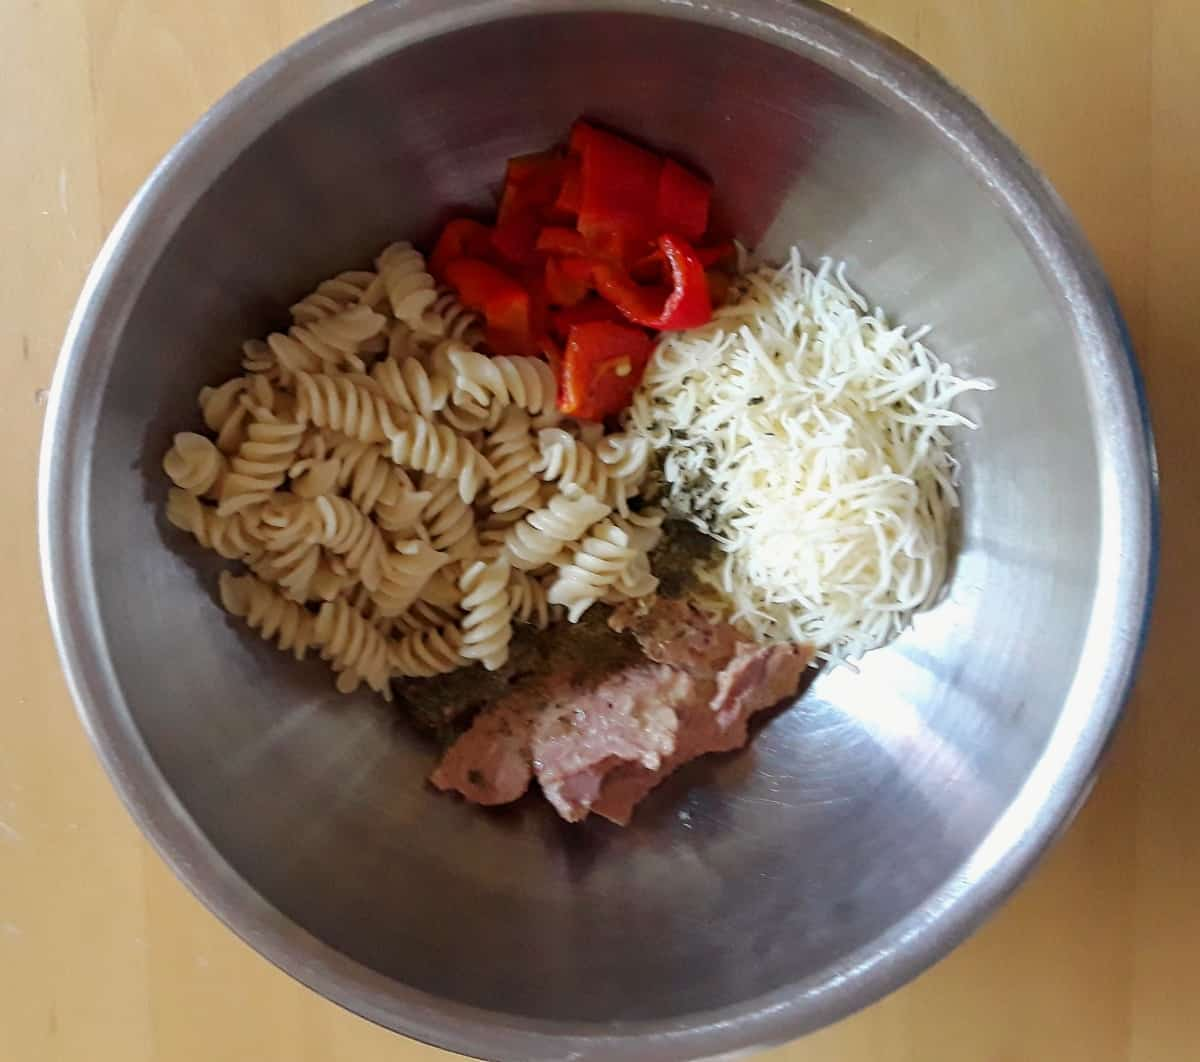 Fusilli pasta, red pepper, tuna and mozzarella in mixing bowl.